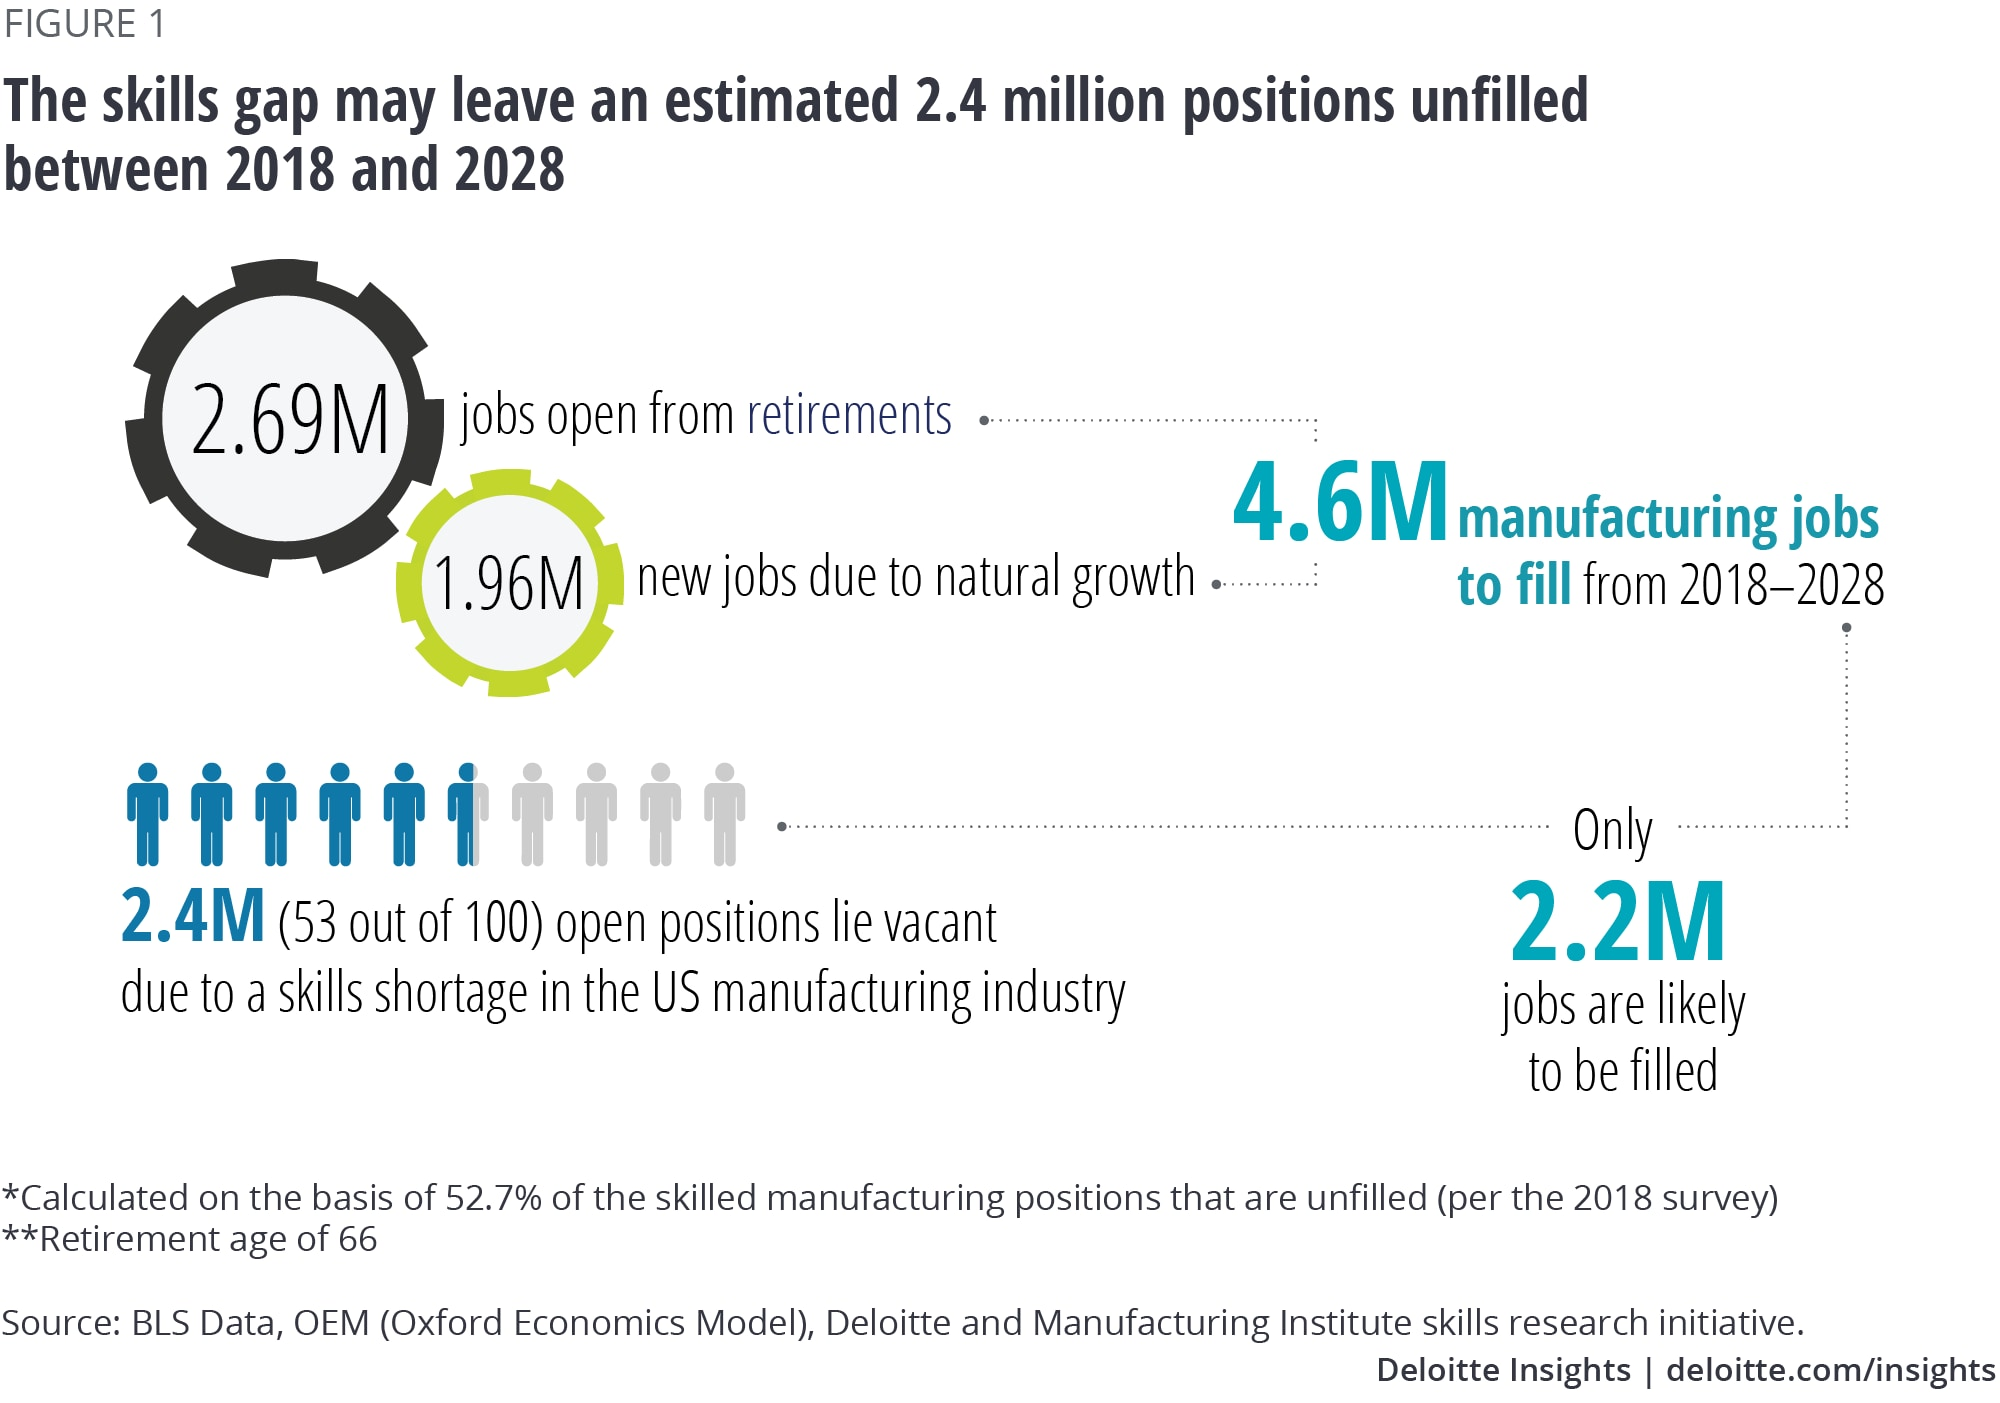 The skills gap may leave an estimated 2.4 million positions unfilled between 2018 and 2028